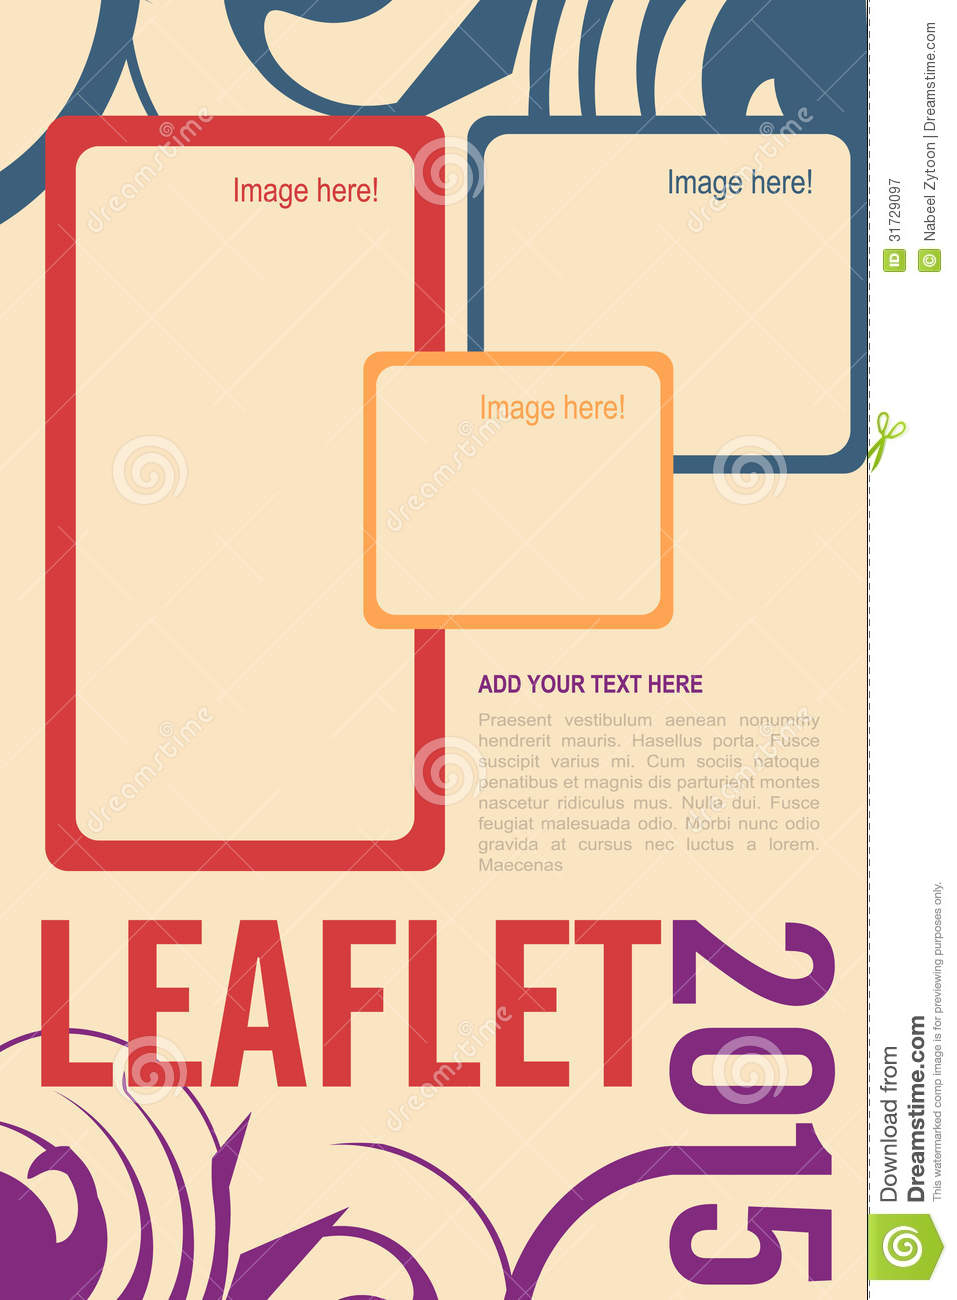 Leaflet design royalty free stock photography image Create a blueprint